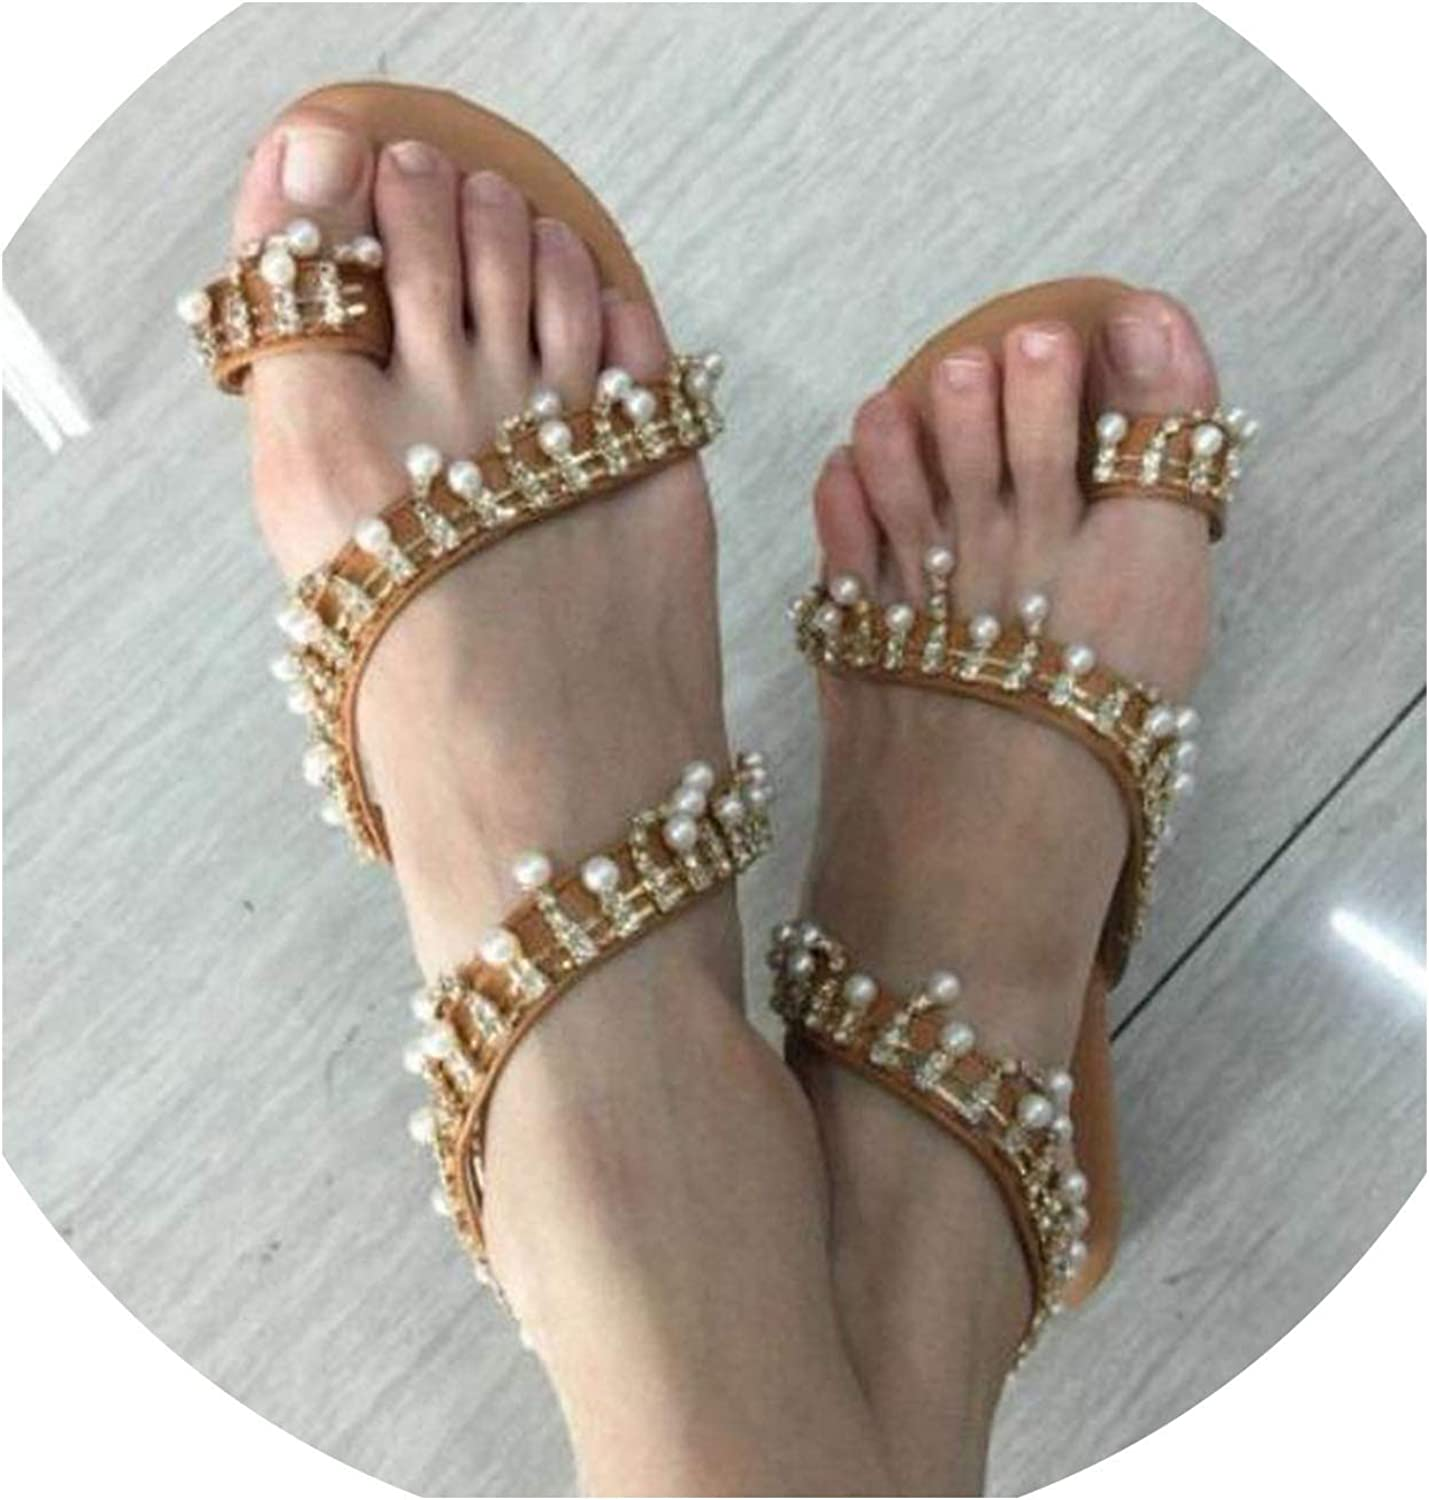 Flat Sandals Summer Casual shoes Leather shoes Mesh shoes Casual shoes with Narrow Straps, Medium Heels and Flat Wedges